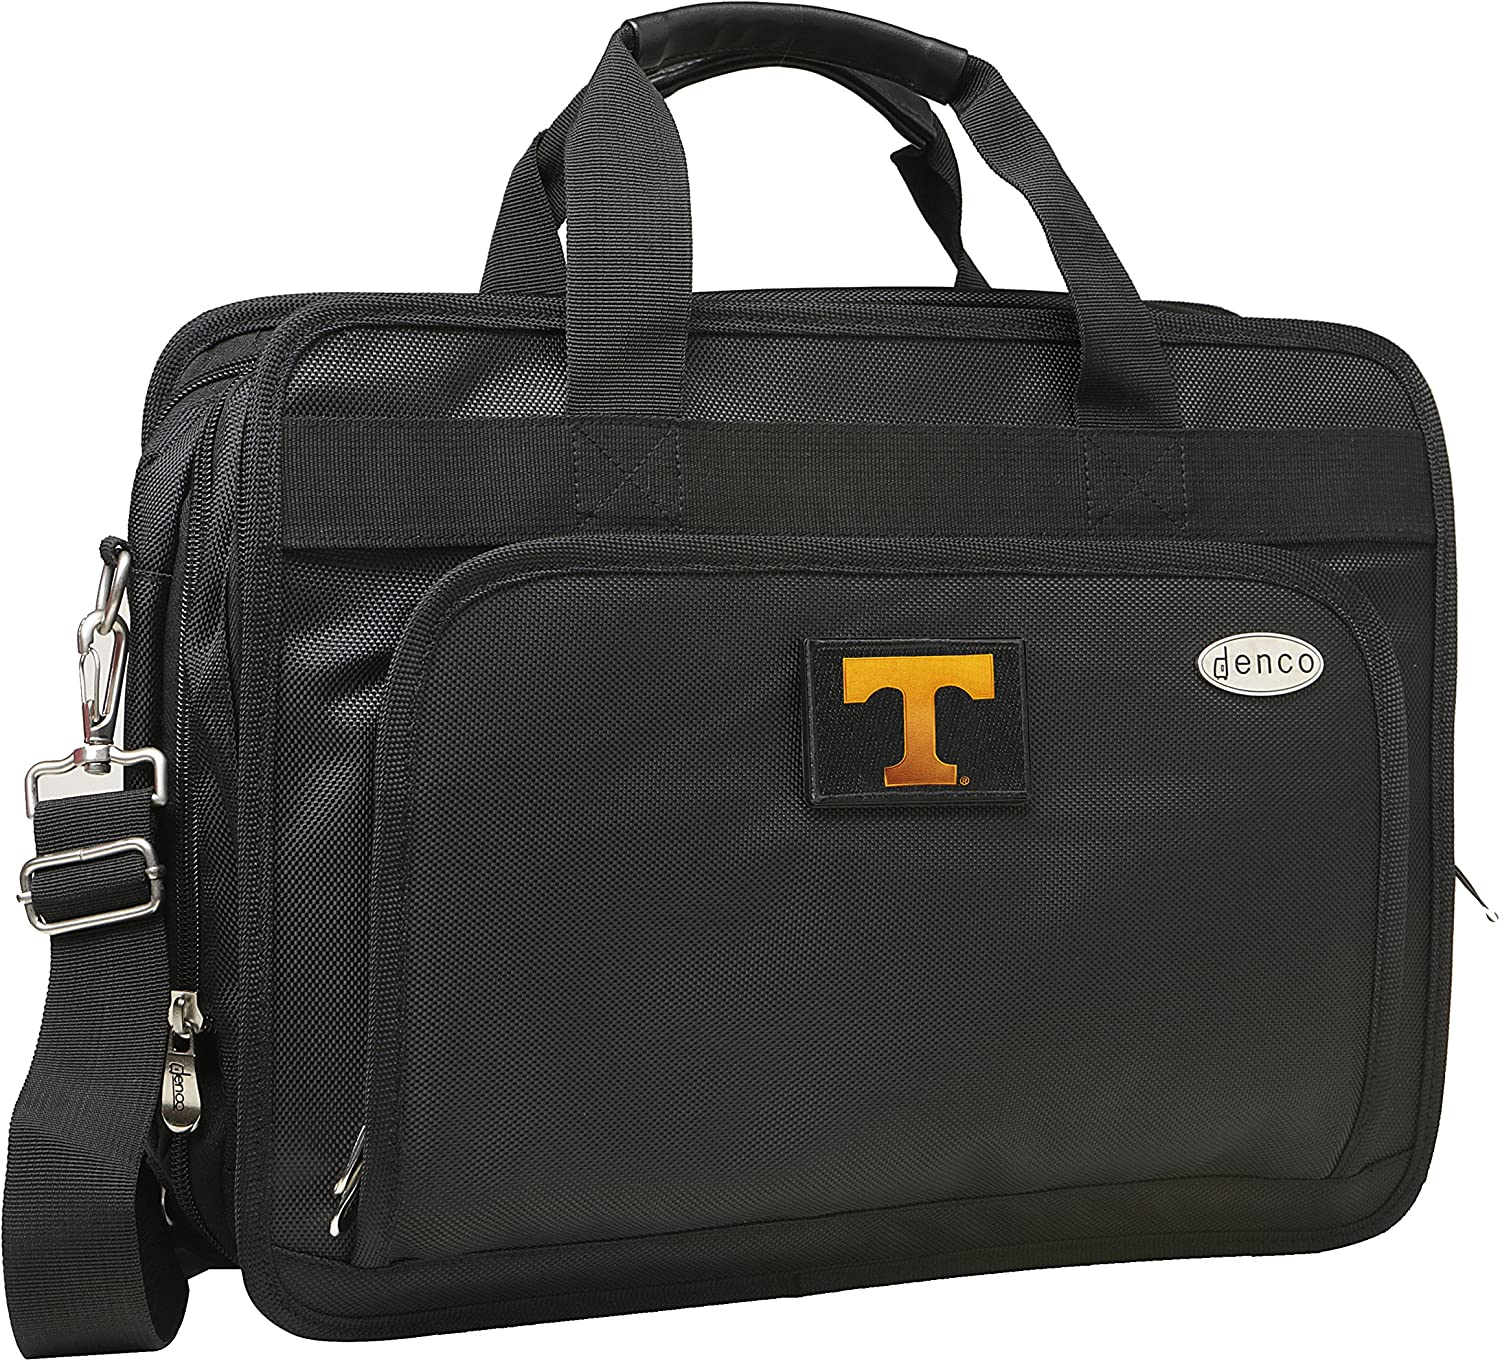 13-Inch Black Denco NCAA Tennessee Volunteers Expandable Laptop Briefcase